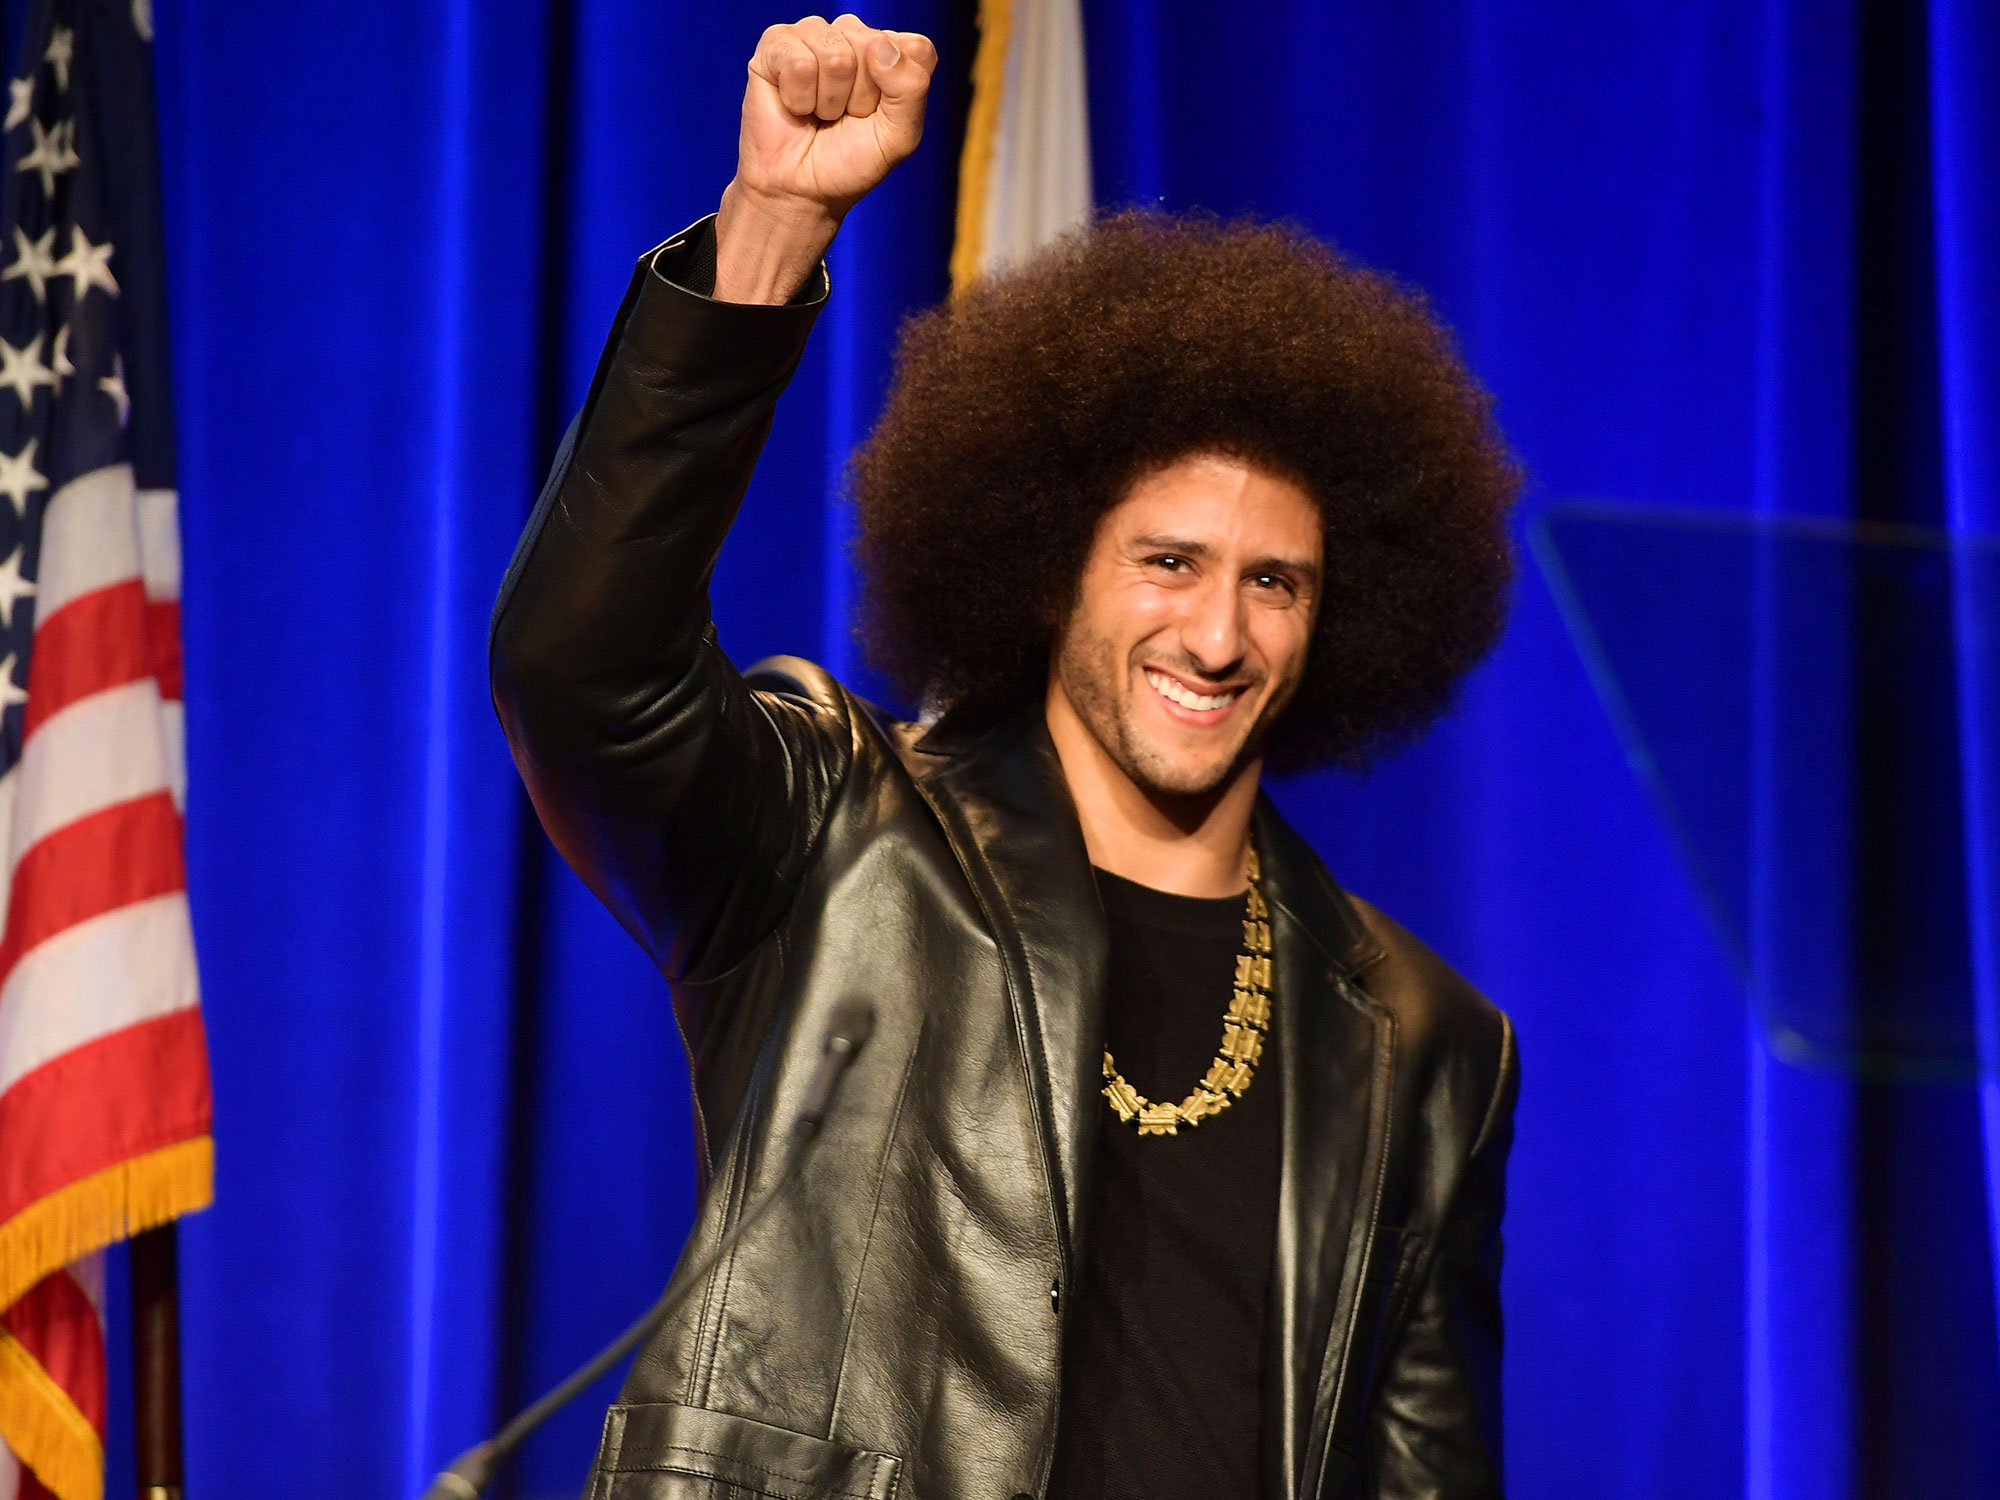 """The recipient of SI's 2017 Muhammad Ali Legacy Award and one of the first NFL players to protest the national anthem,Kaepernick has devoted both his energy and his money to the causes he cares about. In '16, took the Million Dollar Pledge, a promise to donate $1 million to organizations dedicated to serving """"oppressed"""" people and communities. He's continued to donate in increments to different organizations, ranging from Home2Heart, which helps provide beds and furniture to single mothers in Atlanta, to Coalition for the Homeless in New York. His website indicates that he has donated $900K of that $1M pledge so ar."""